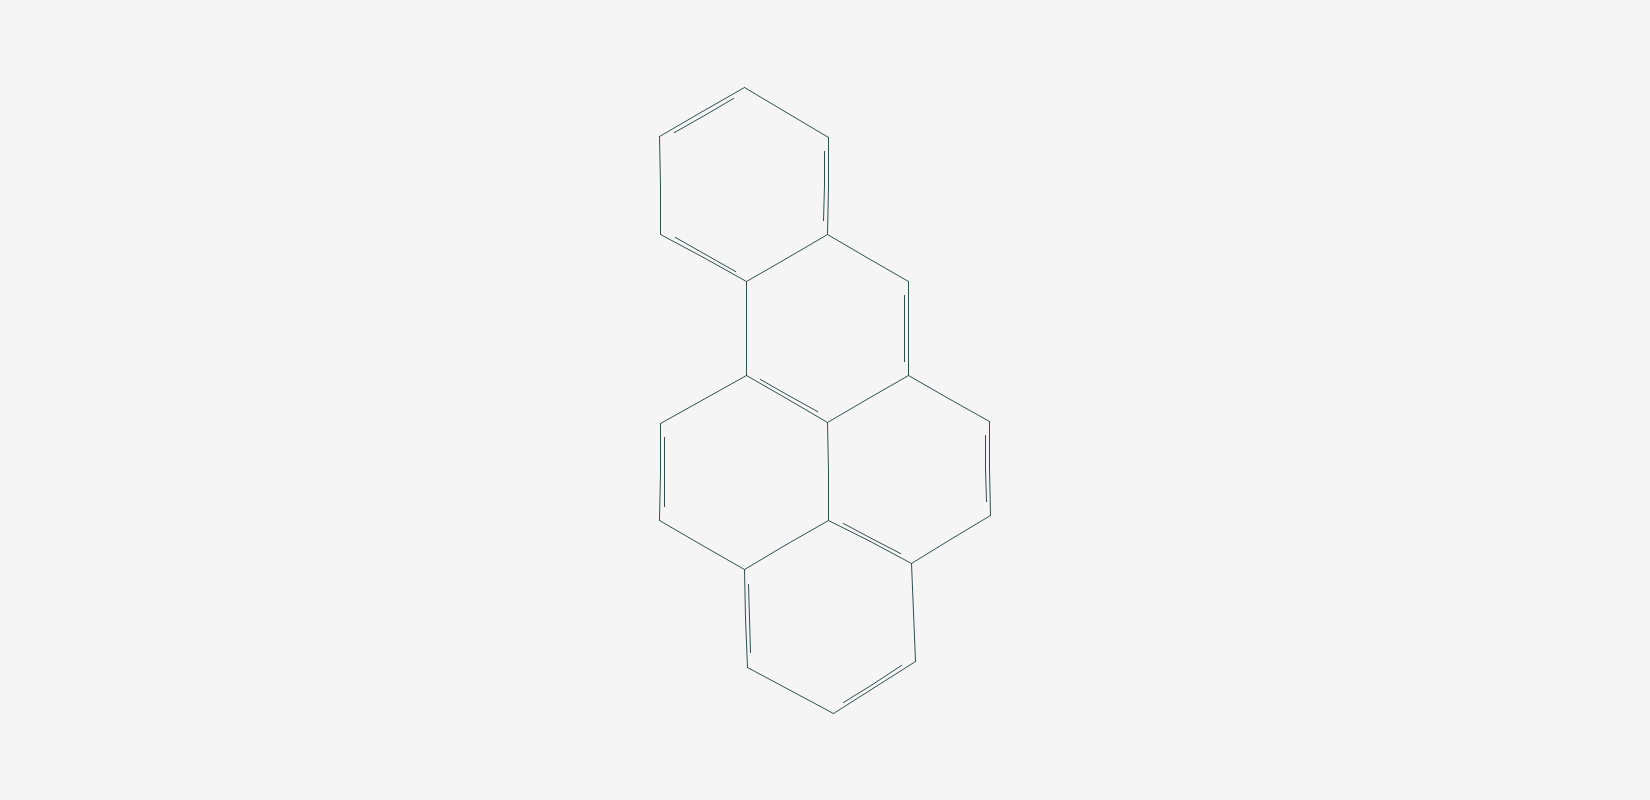 Structure of benzo[a]pyrene